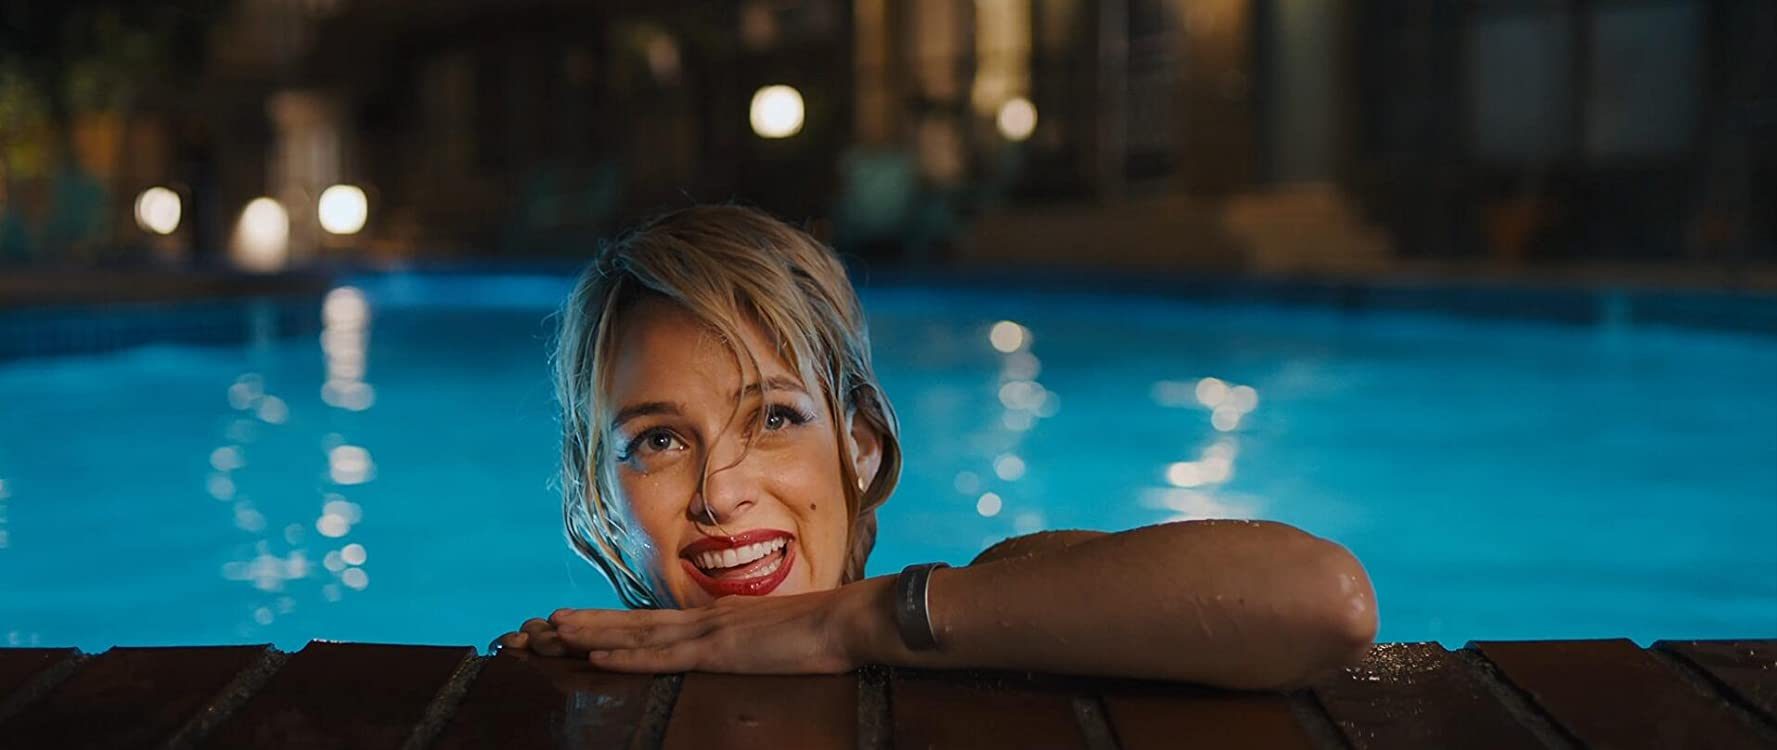 Riley Keough in Under the Silver Lake (2018)